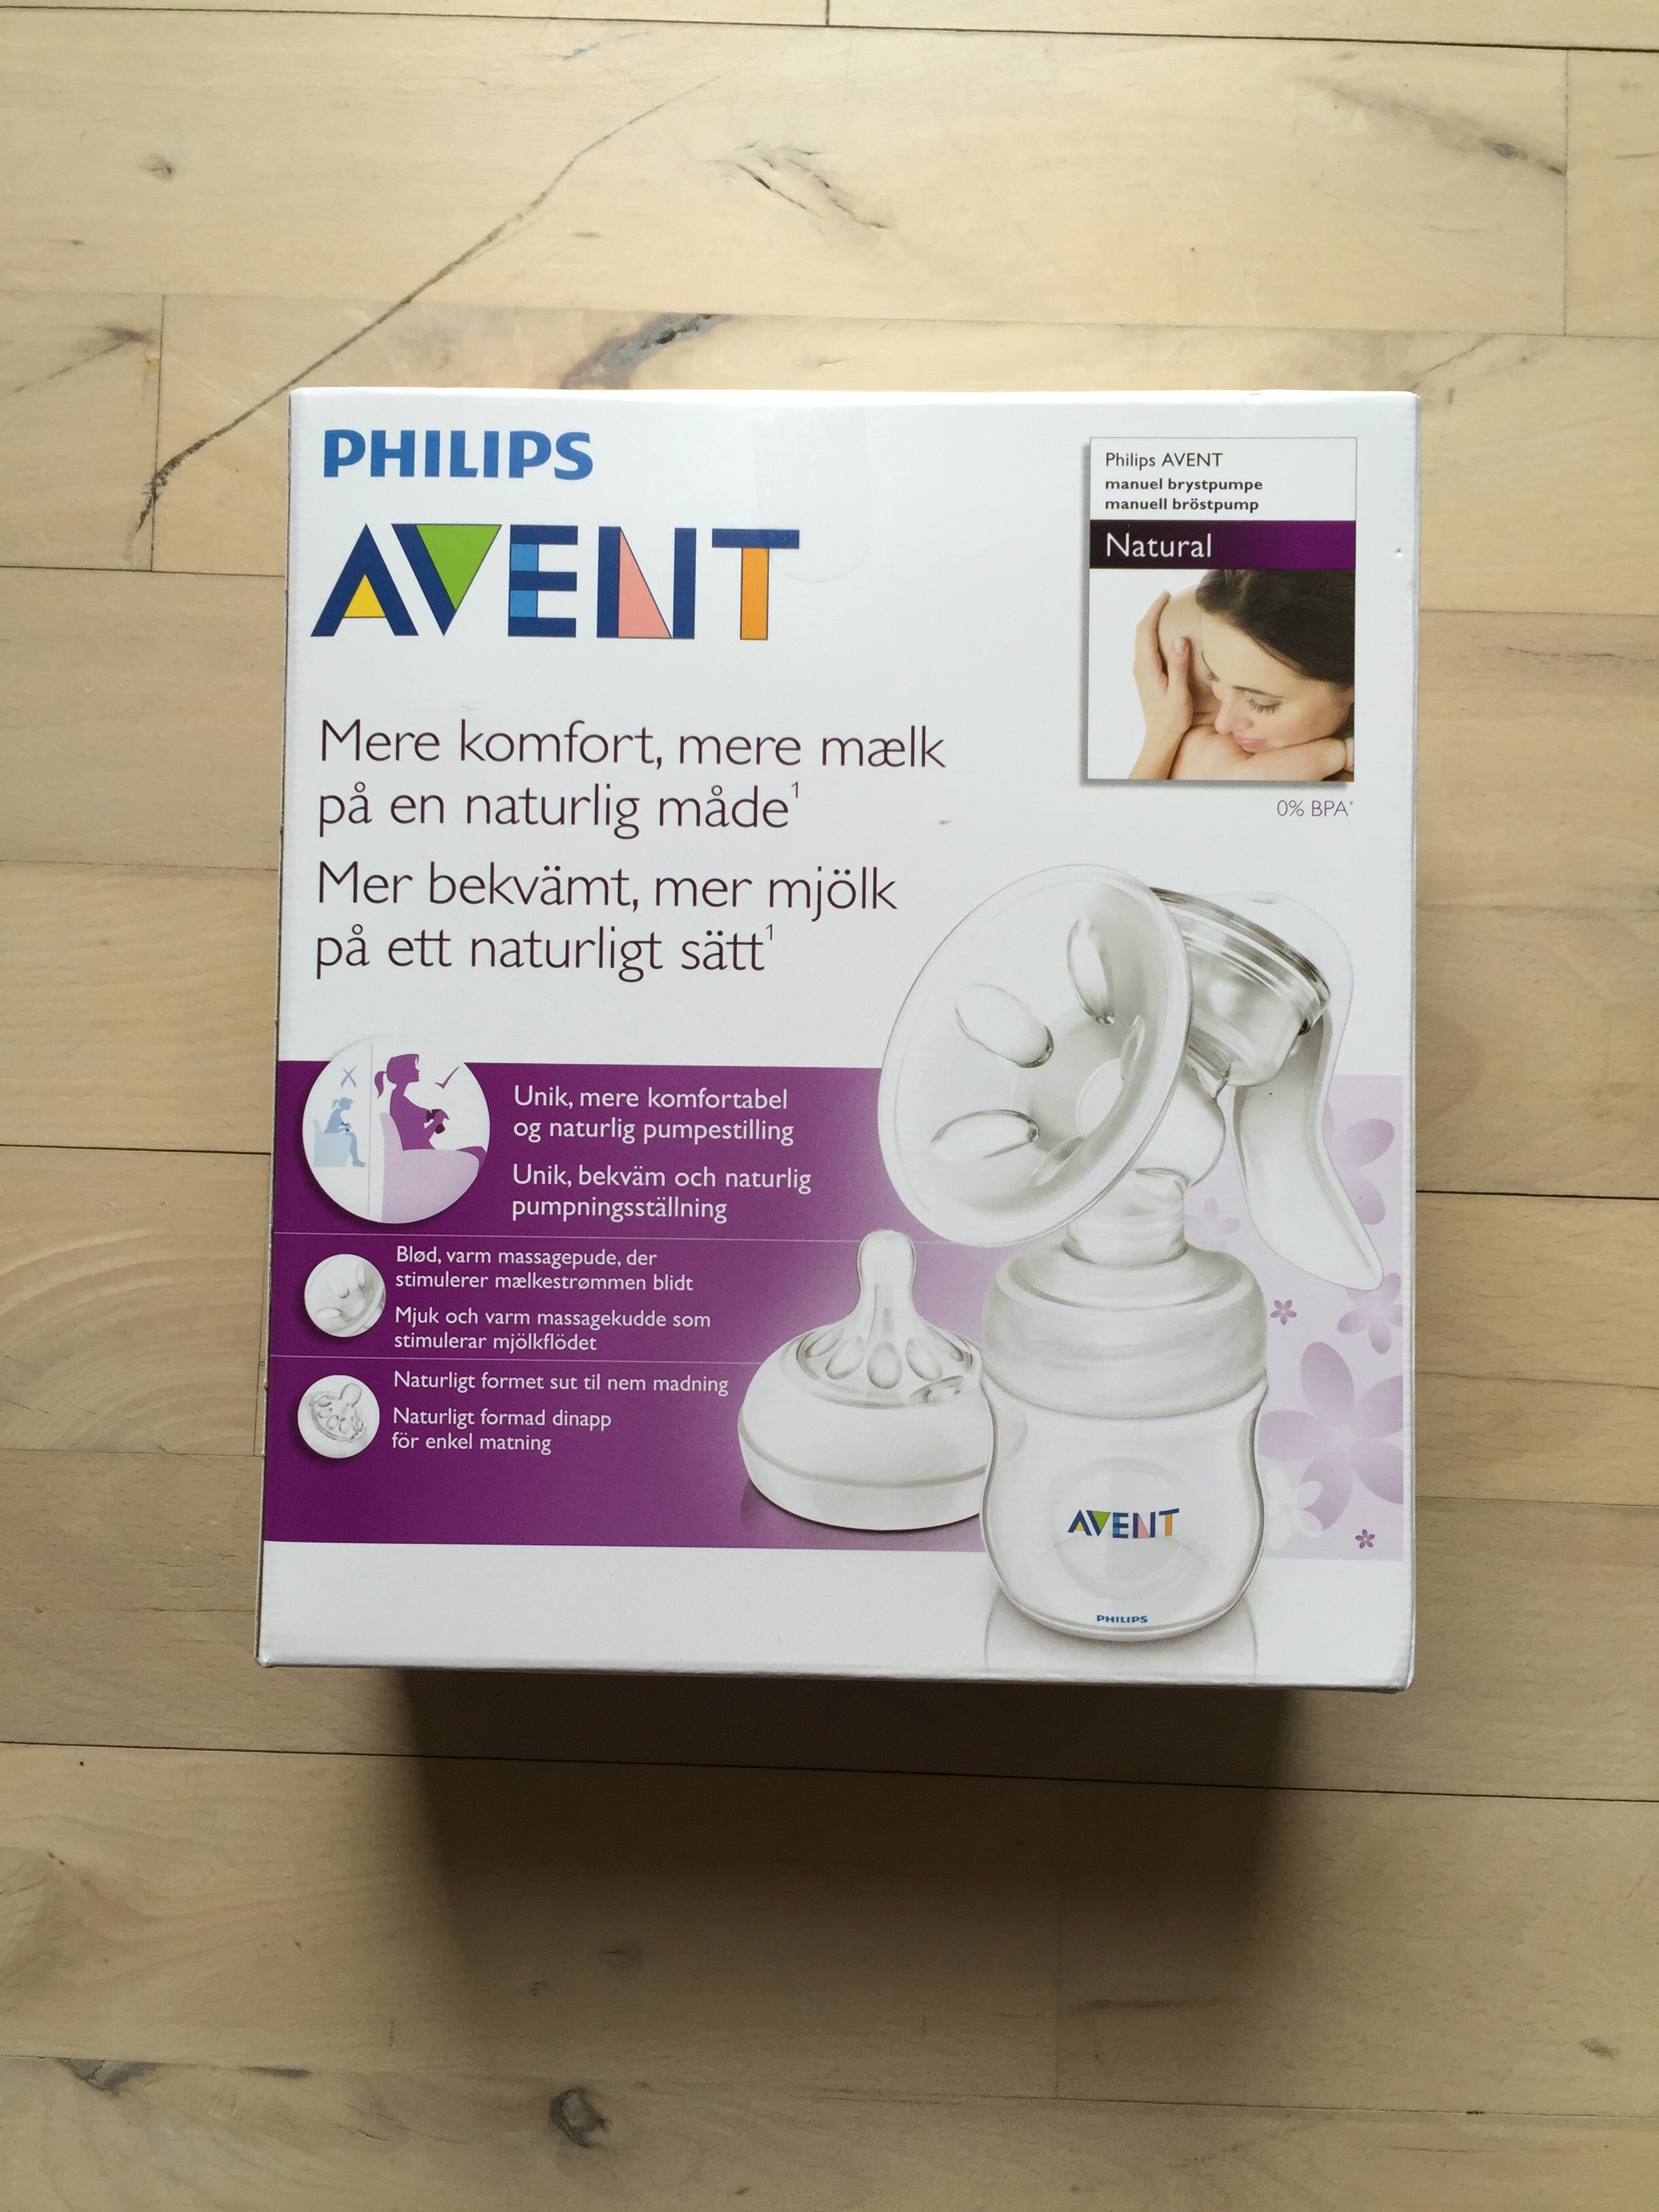 philips avent brystpumpe test